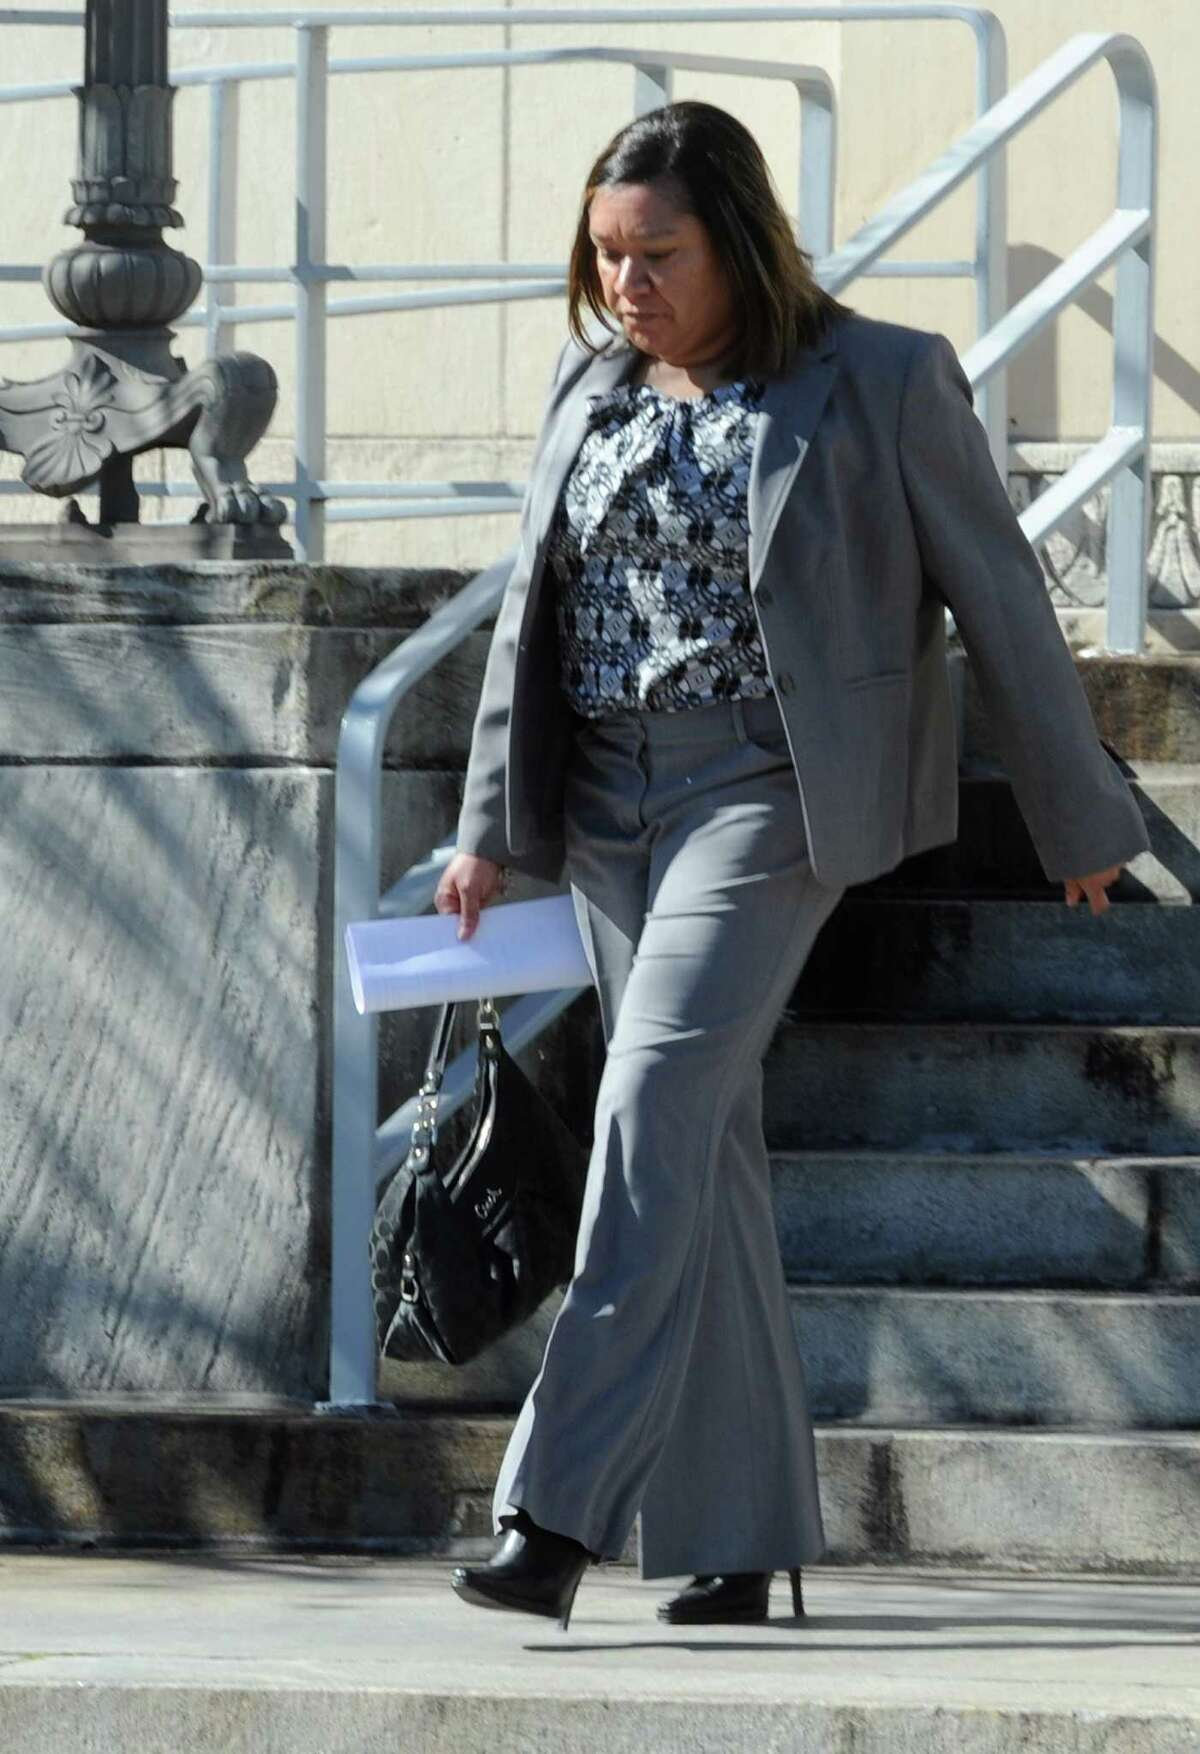 Sharika Allison, Beaumont ISD's former comptroller, has been ordered to pay back $4 million to the district after embezzling millions along with former chief financial officer Devin McCraney. Photo taken Thursday, January 16, 2014 Brooke Crum/@broocrum